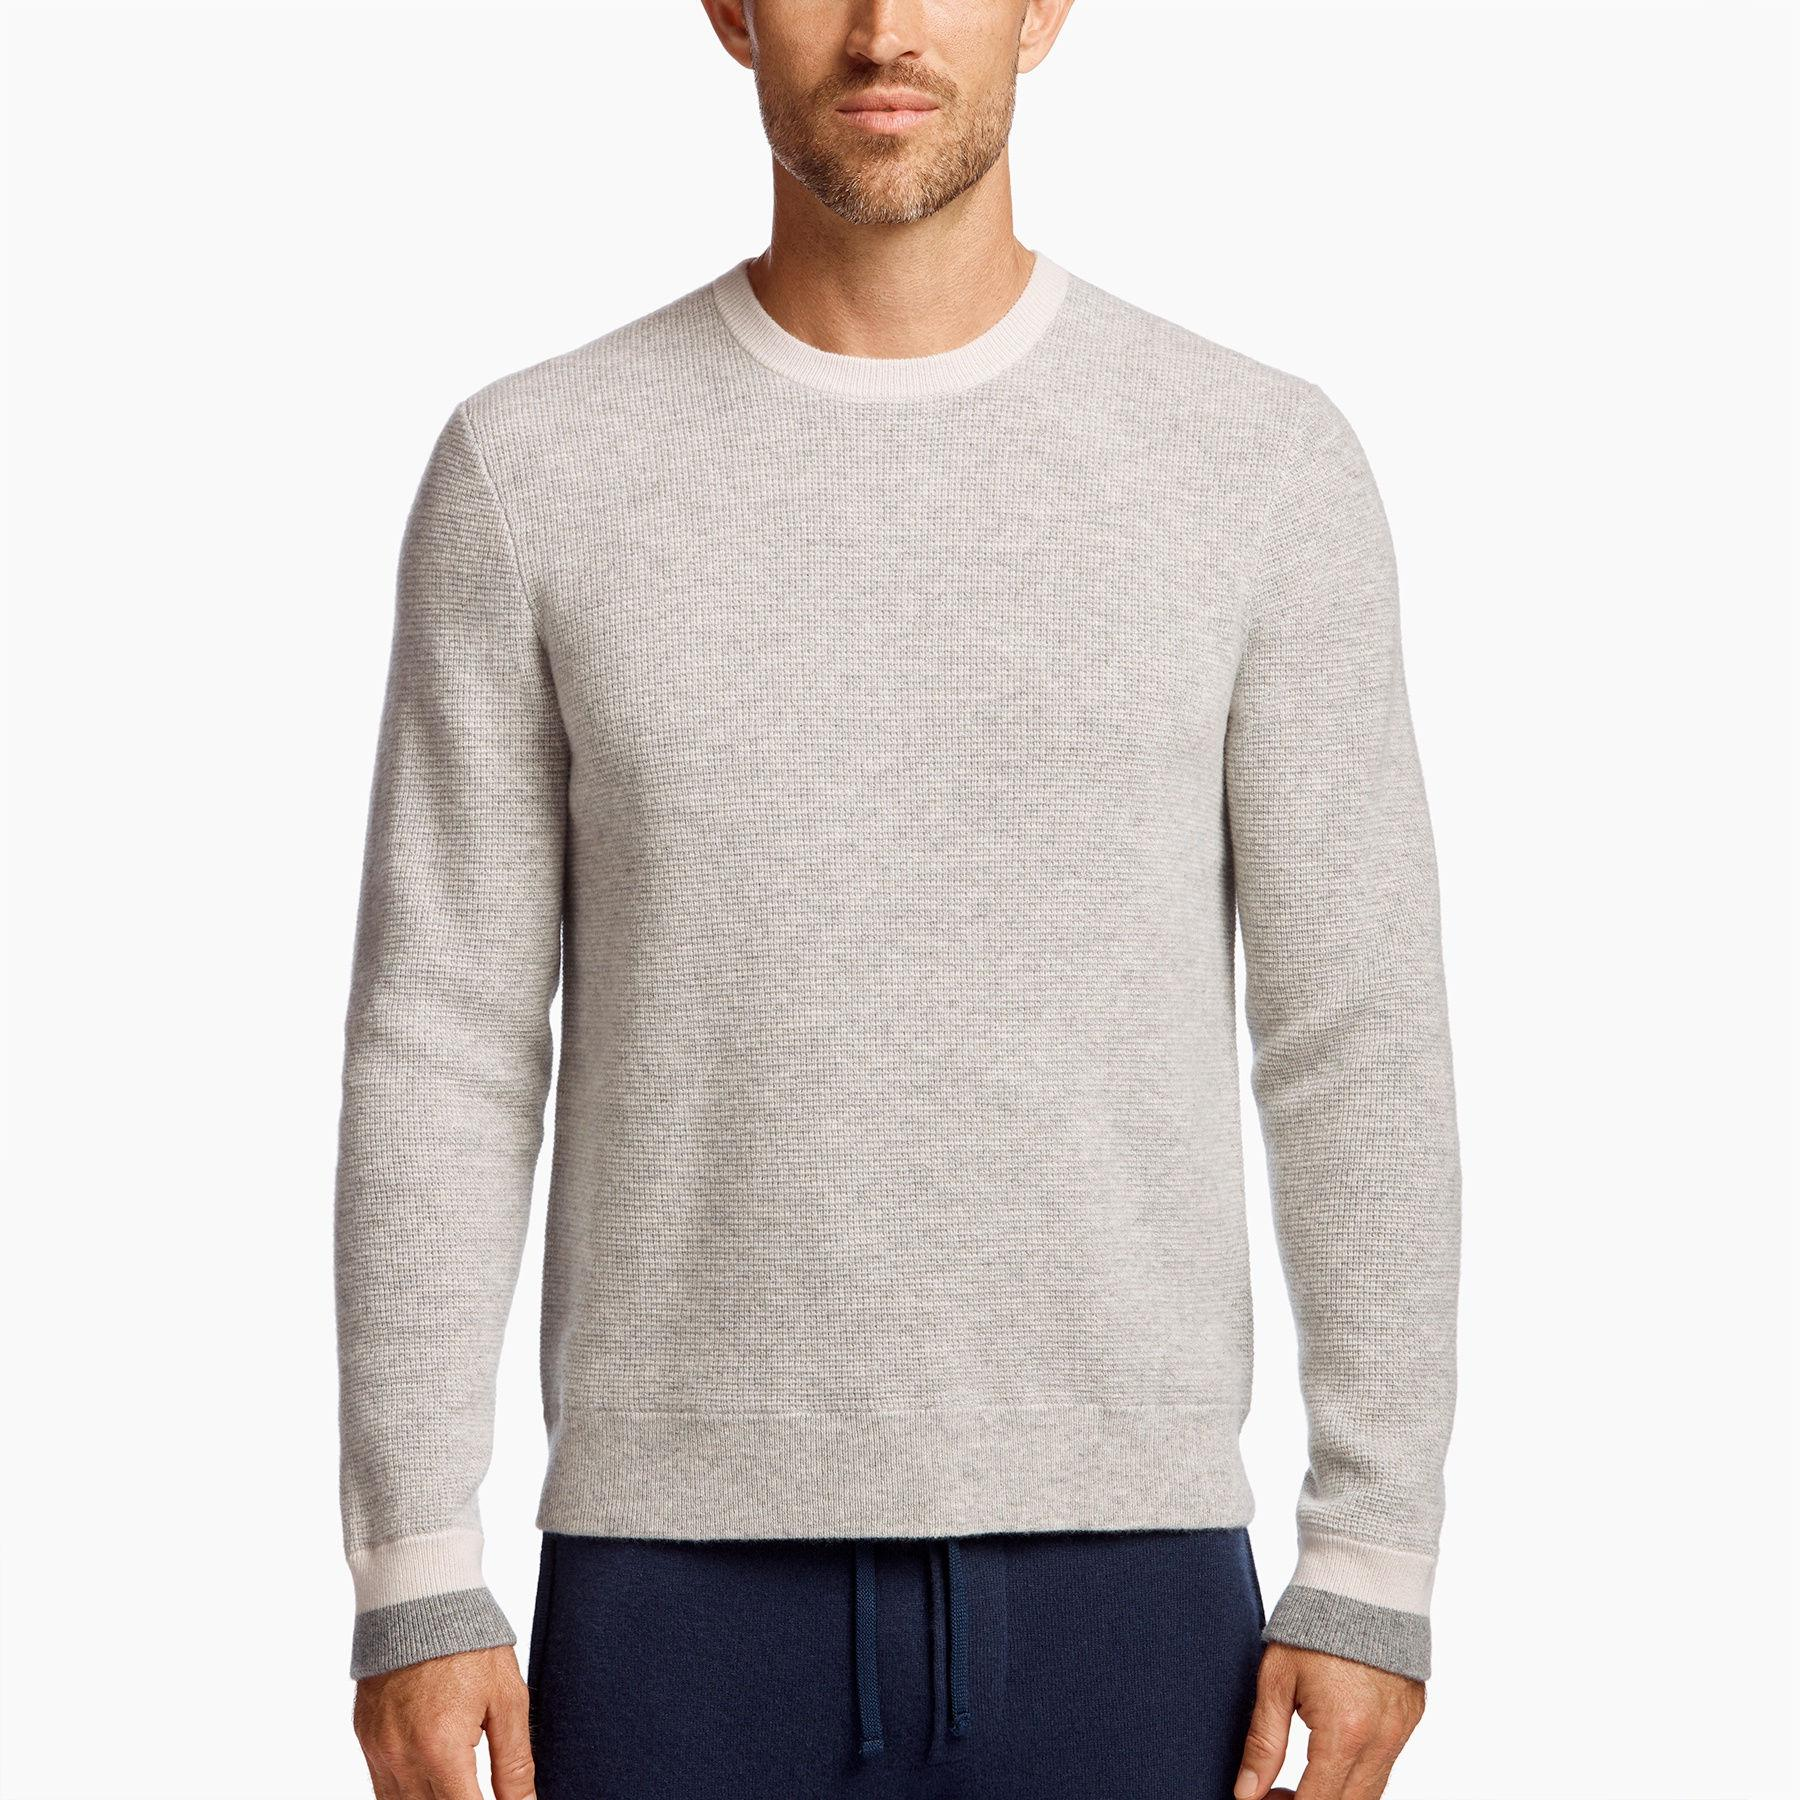 37e06560f James Perse Baby Cashmere Sweater in Gray for Men - Lyst